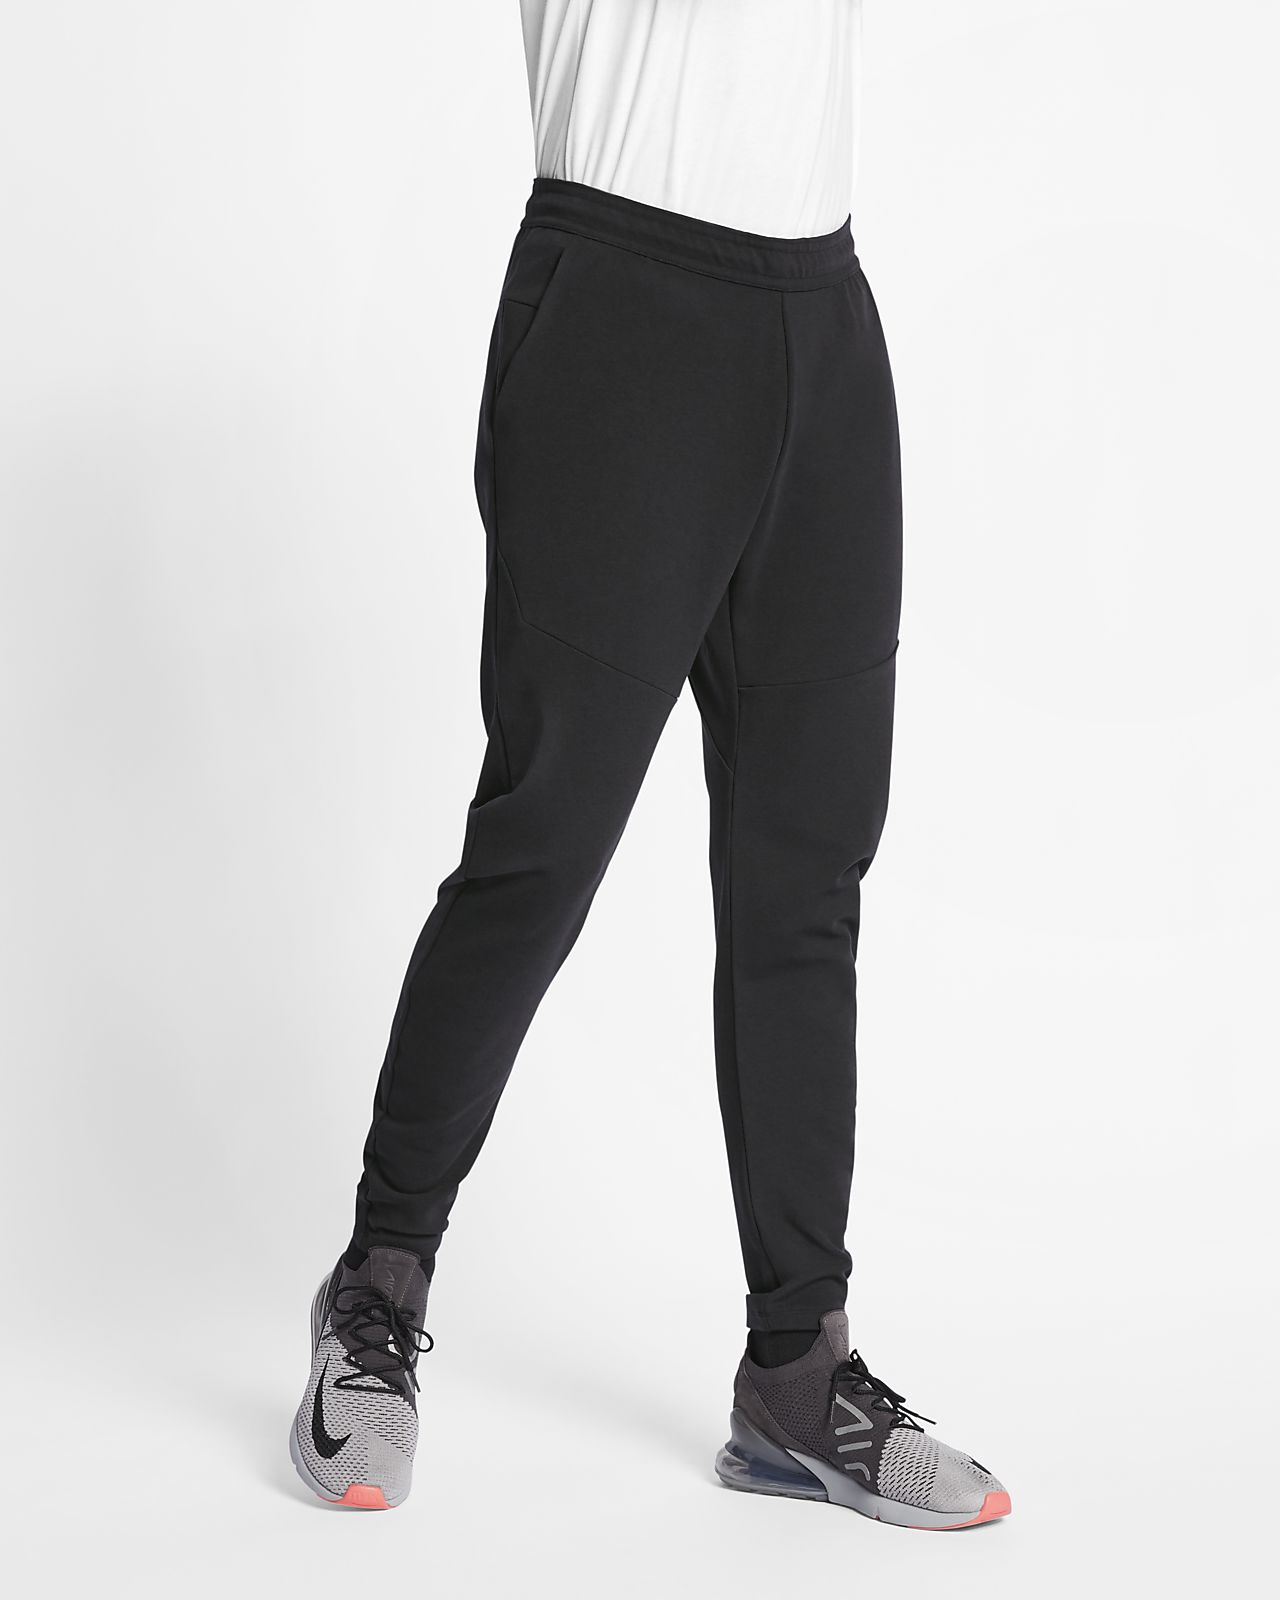 d416ba8c92 Nike Sportswear Tech Pack Men's Trousers. Nike.com CH